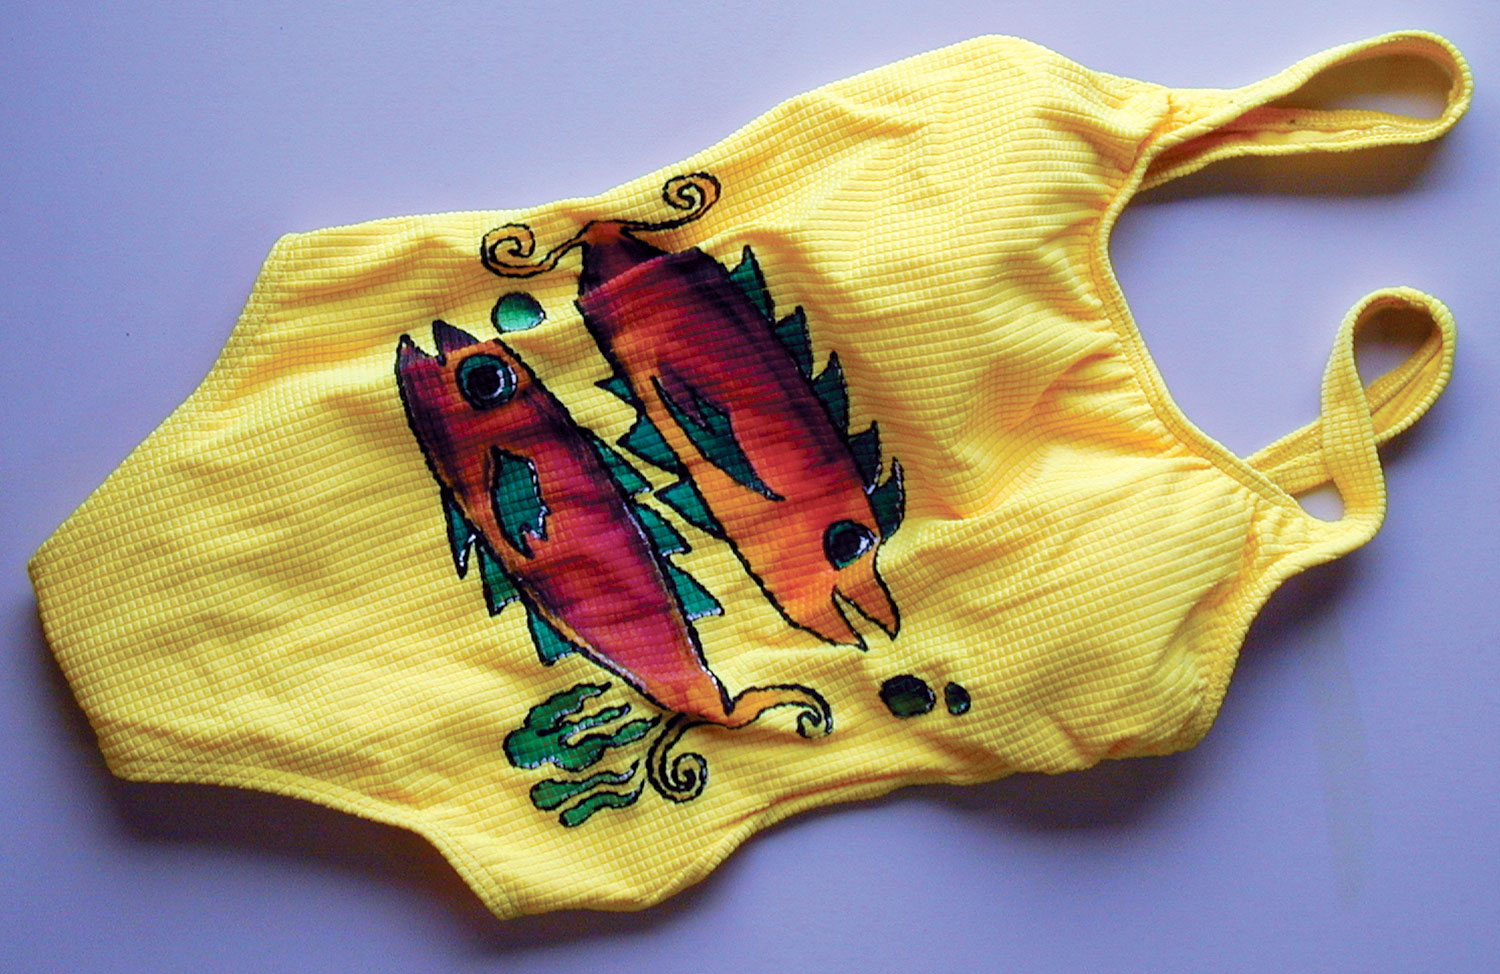 Painted swimsuit by Celia Buchanan - celiabuchanan.com